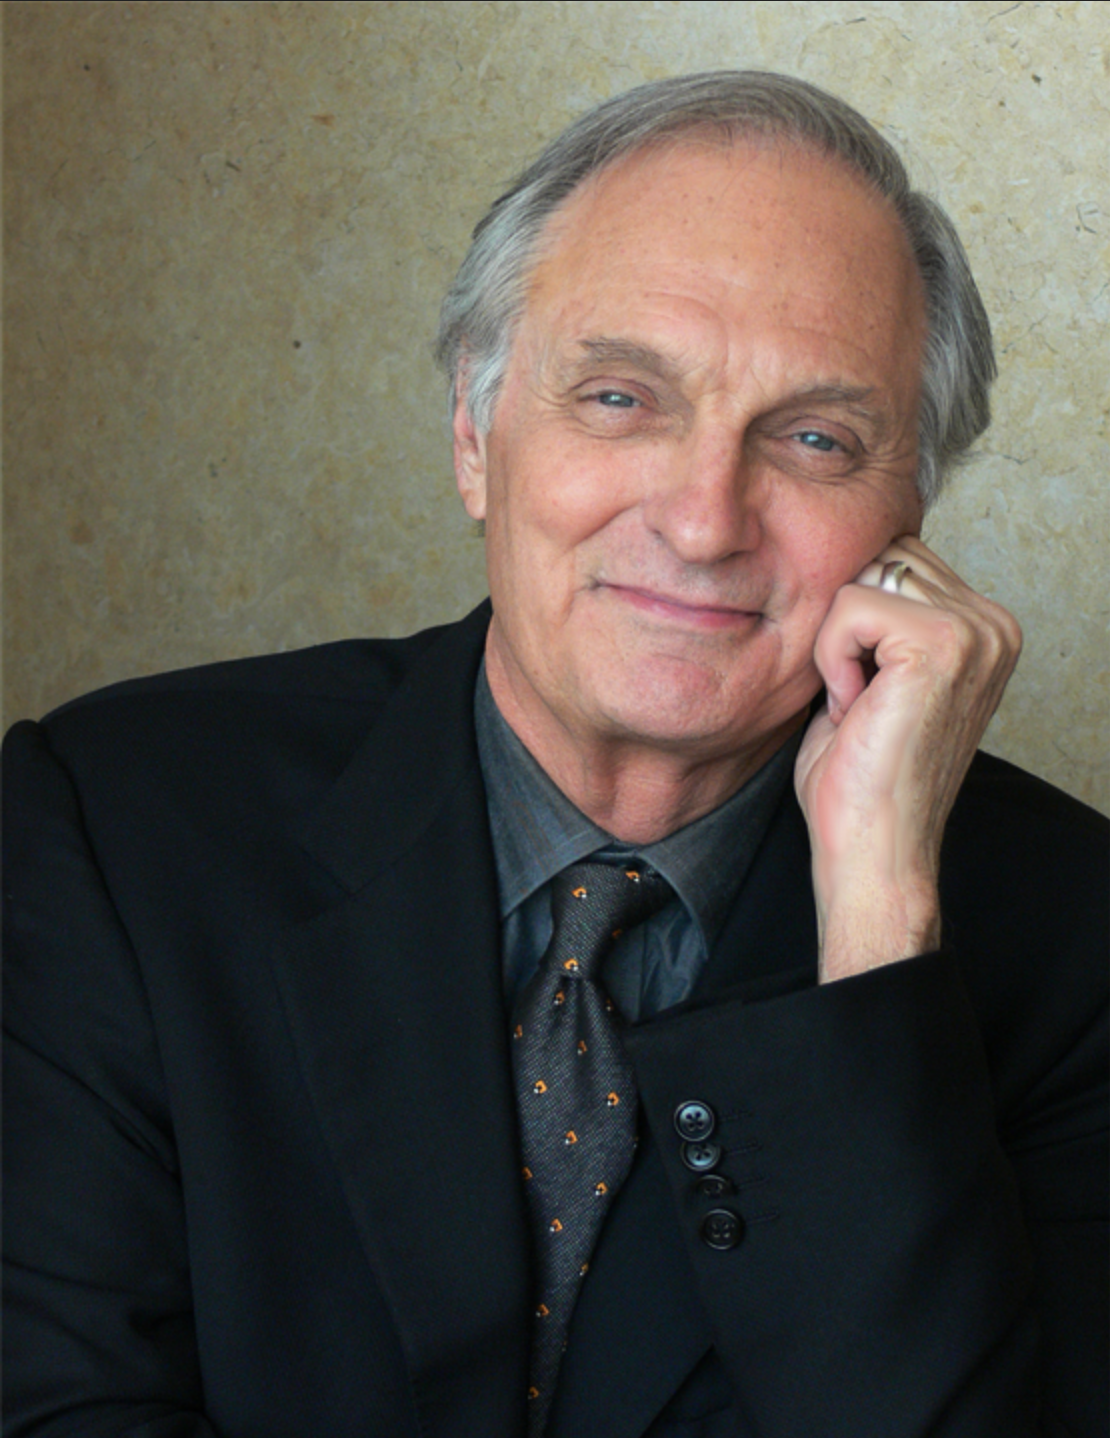 Alan Alda portrait